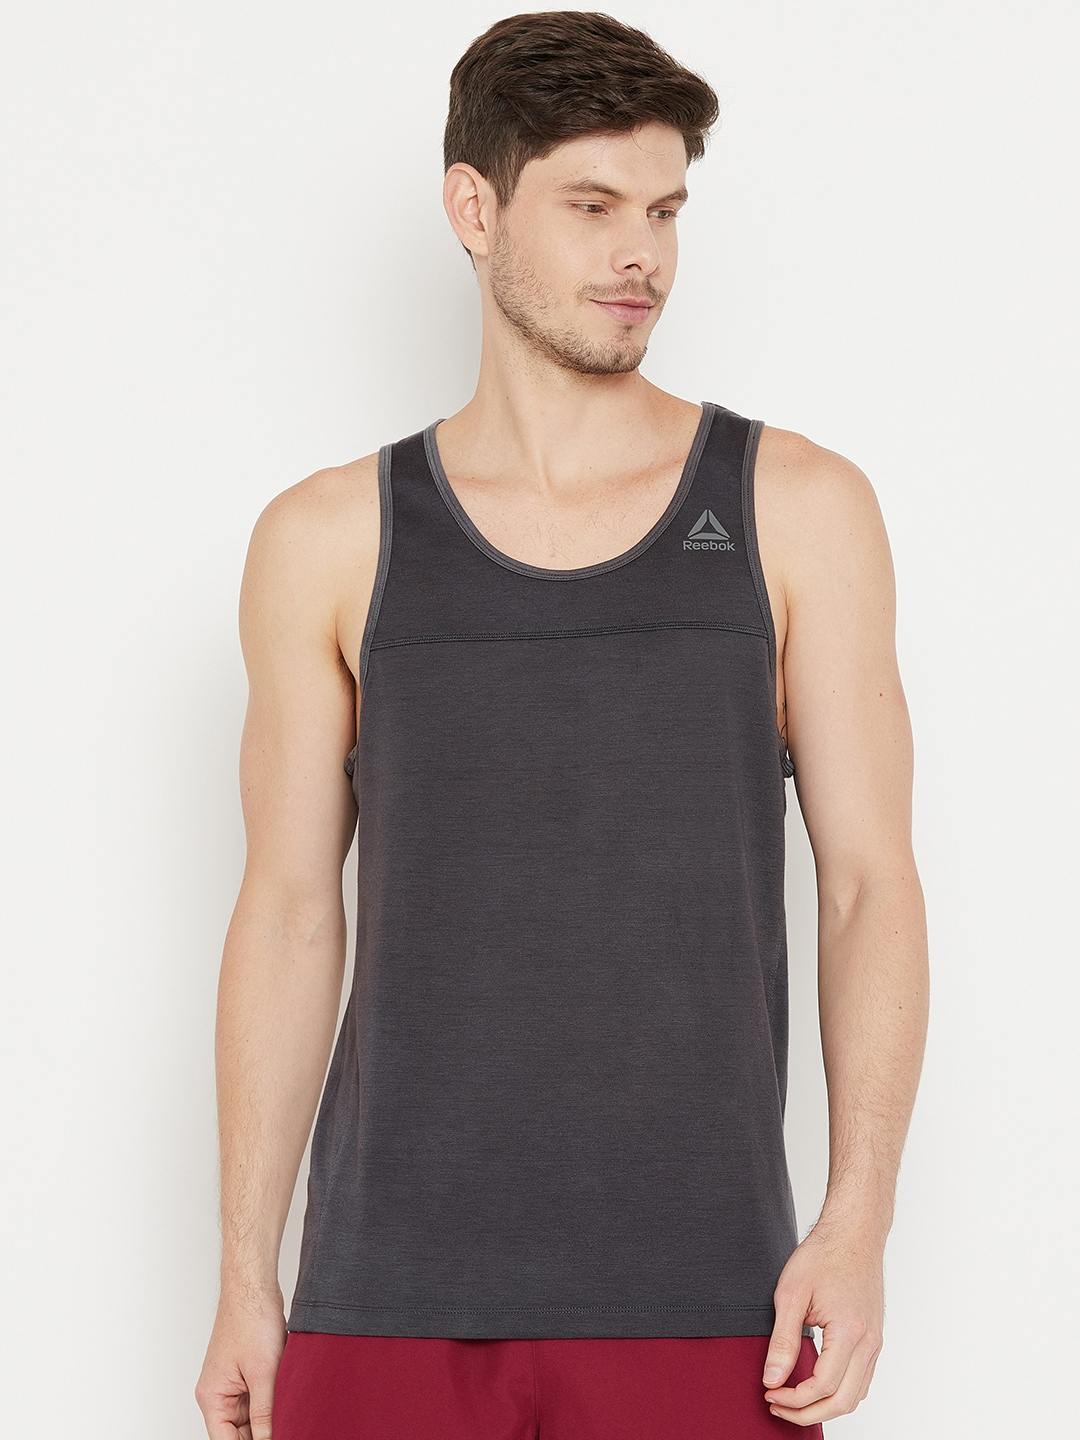 d99d4c15f4cca9 Reebok Neck Topwear - Buy Reebok Neck Topwear online in India